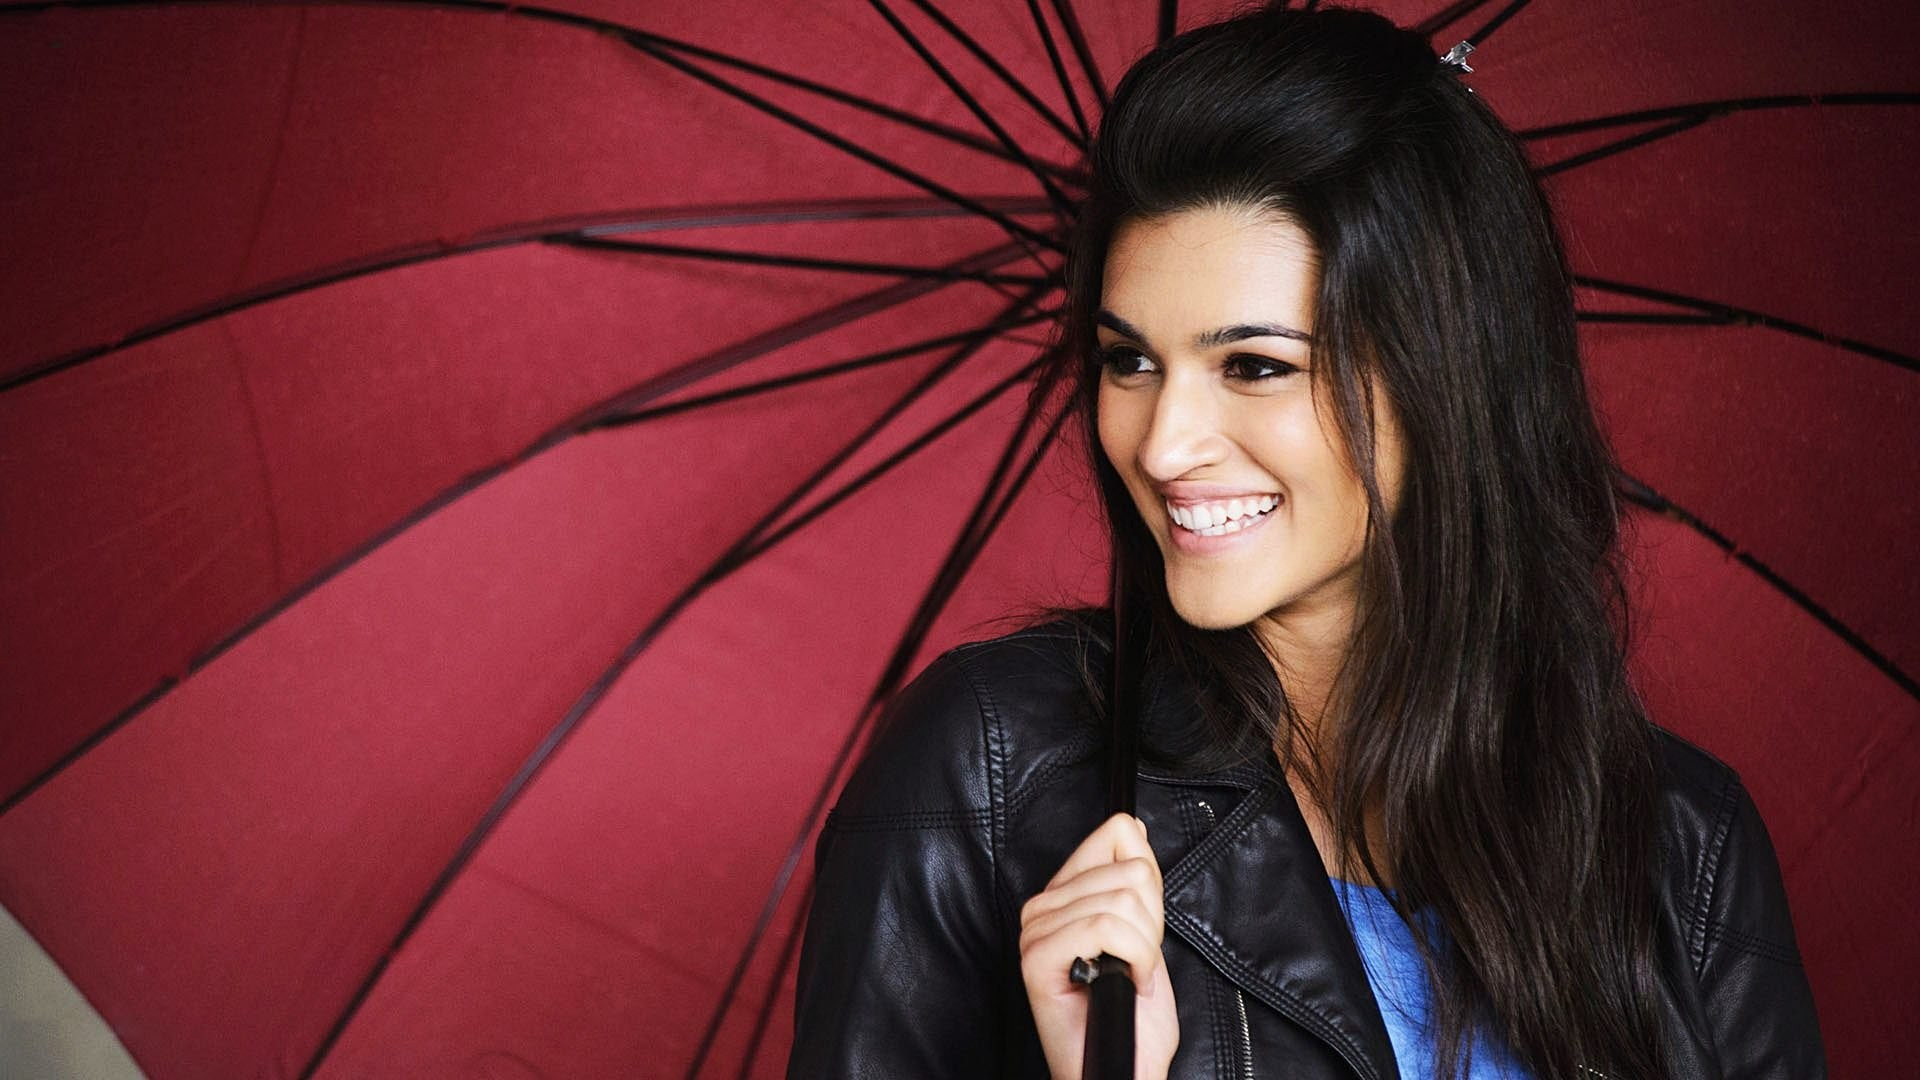 Kriti Sanon looks like a fairytale princess